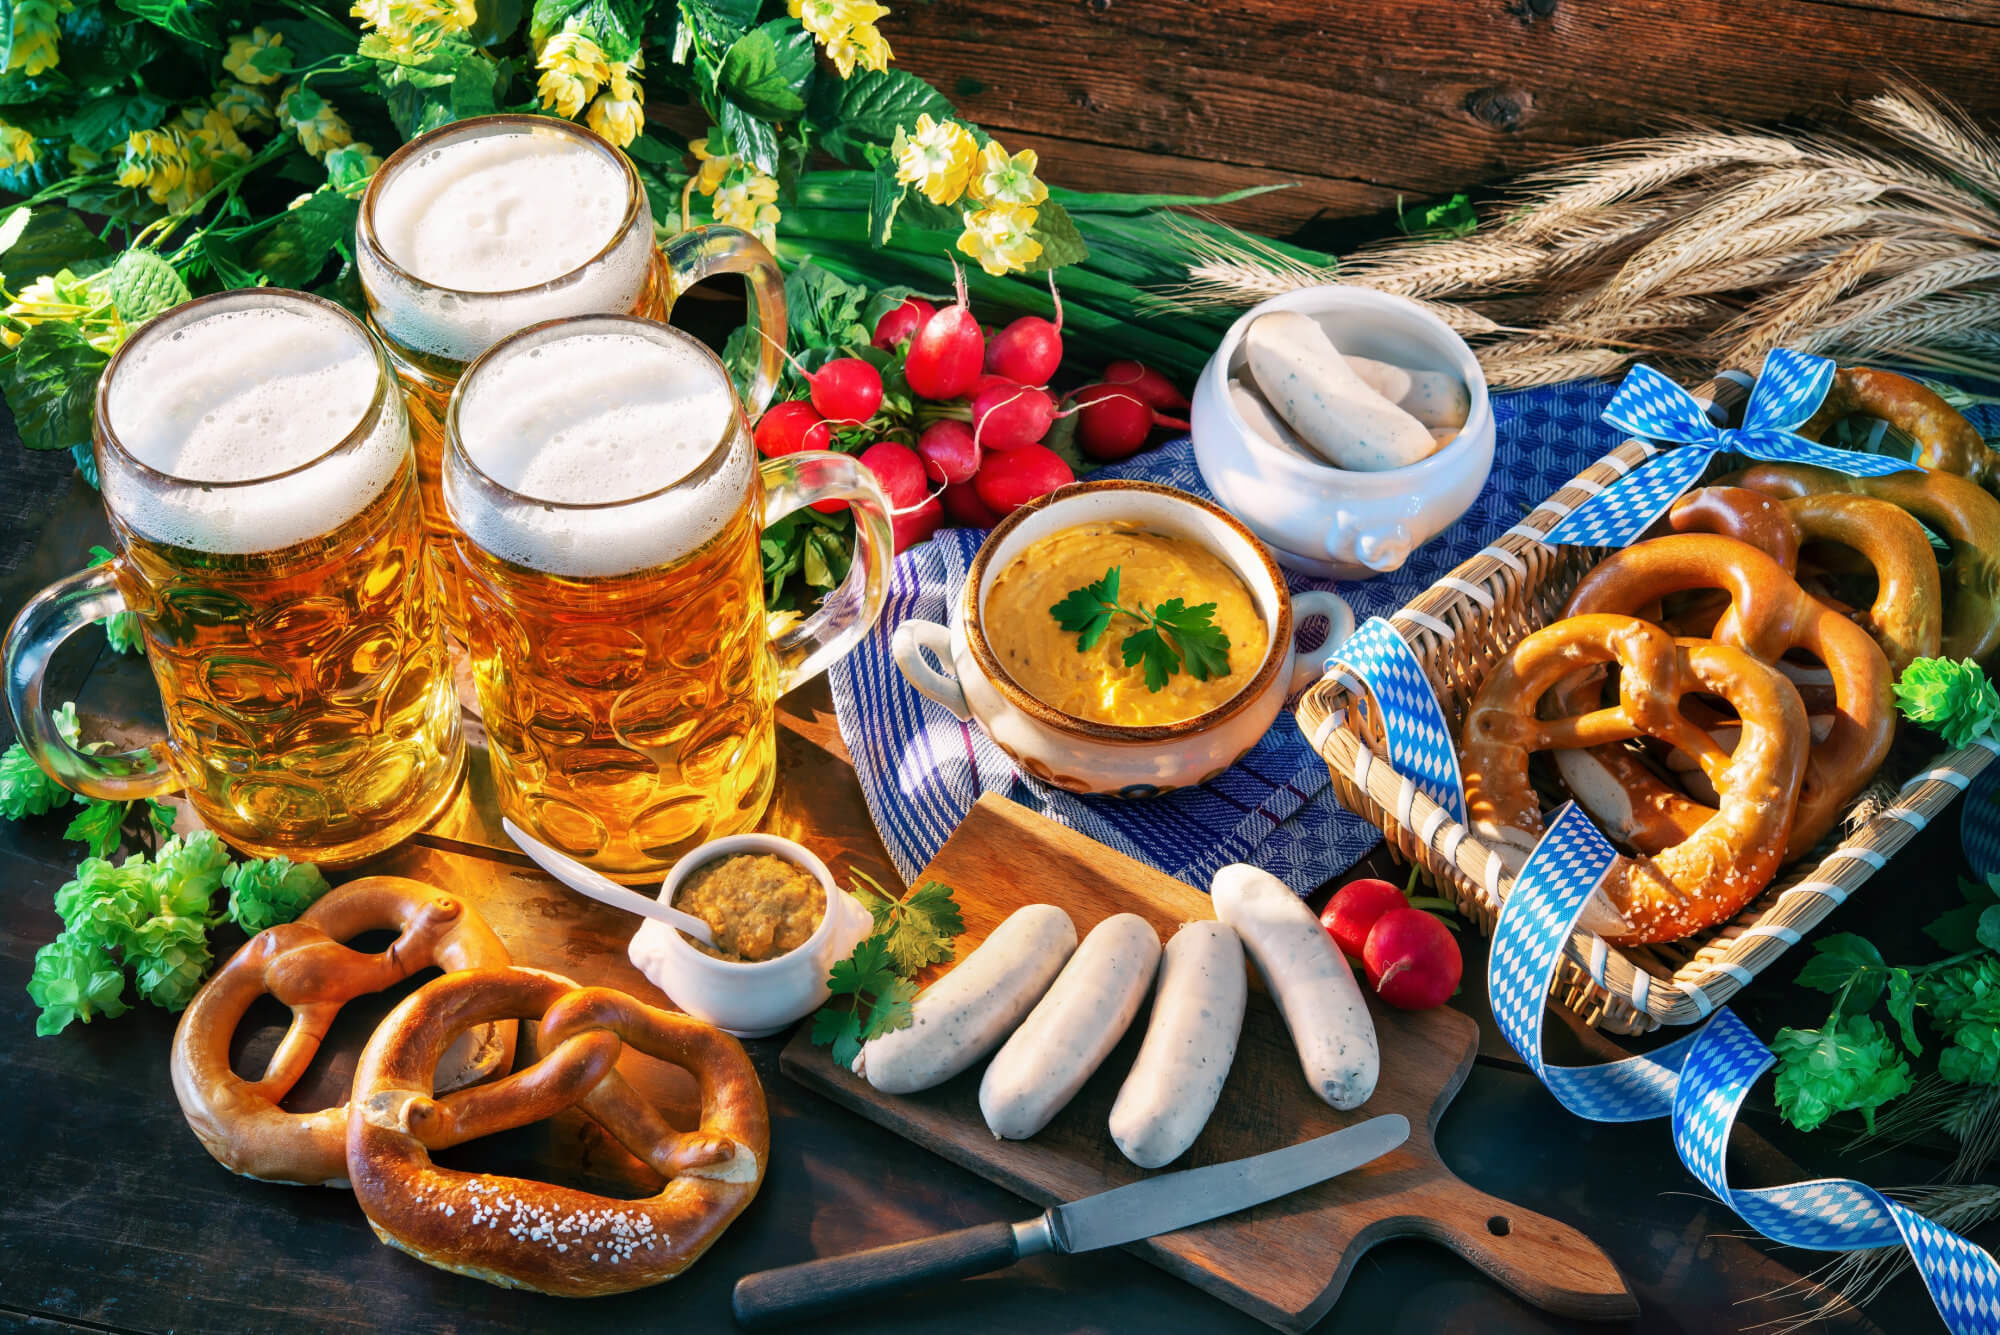 Take Oktoberfest to the Next Level at Mawa's Kitchen – October 5, 2019